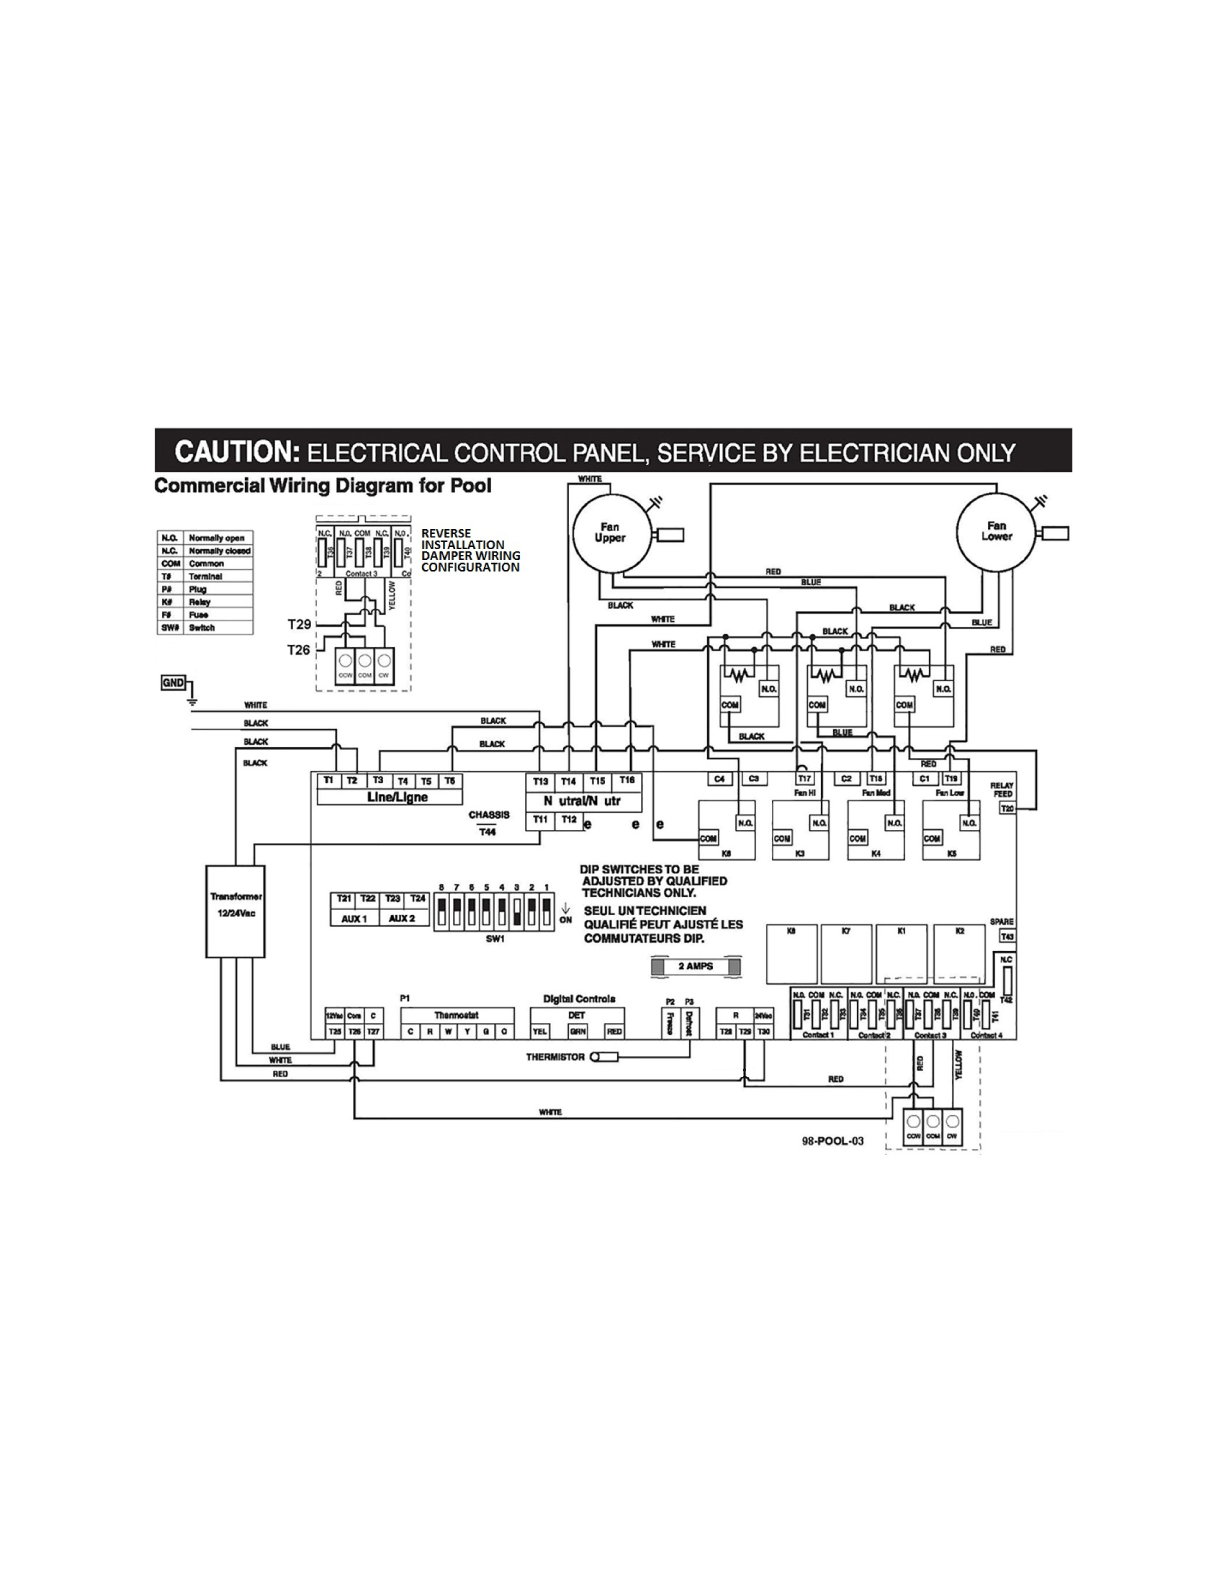 ☑ Intermatic E10694 Pool Timer Wiring Diagram HD Quality ☑ yordon-and-code- diagram.twirlinglucca.itTwirlinglucca.it